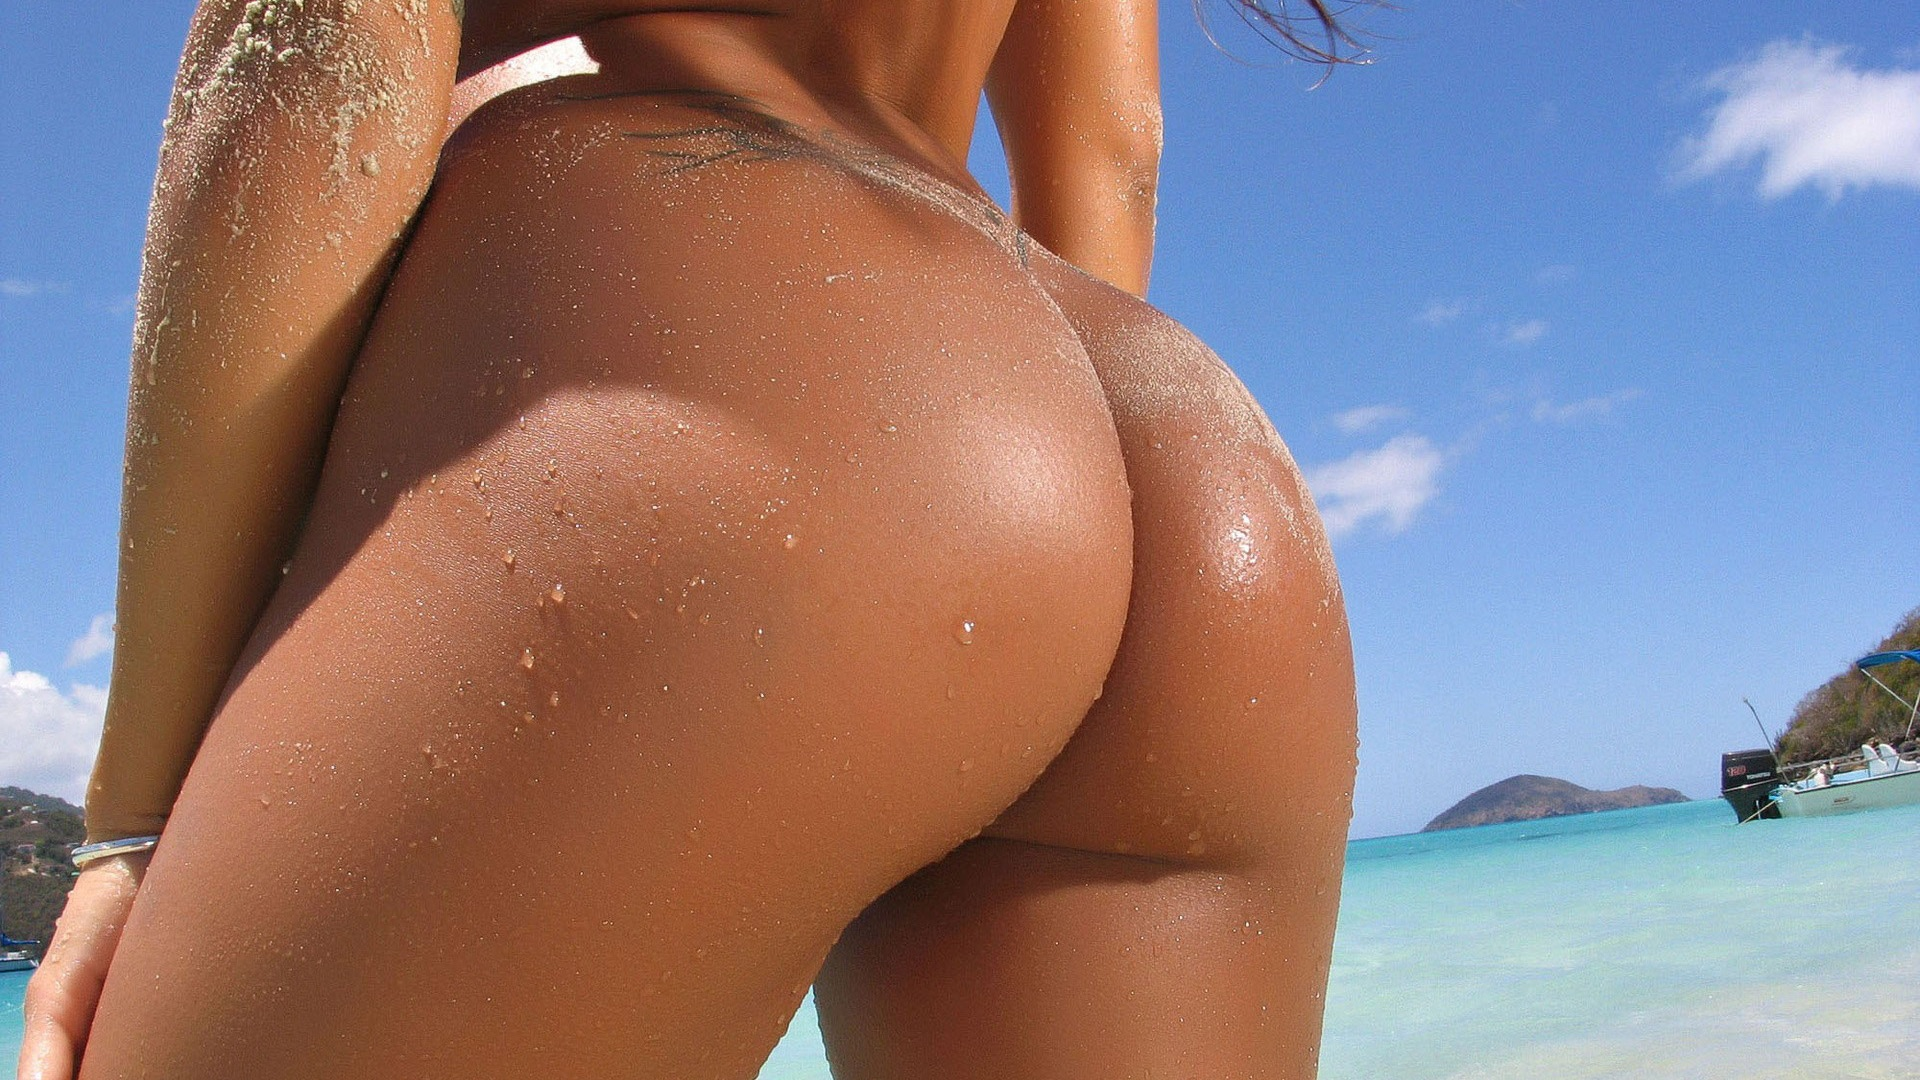 Naked Round Ass Sey Nude Hd Wallpaper Resolution Size